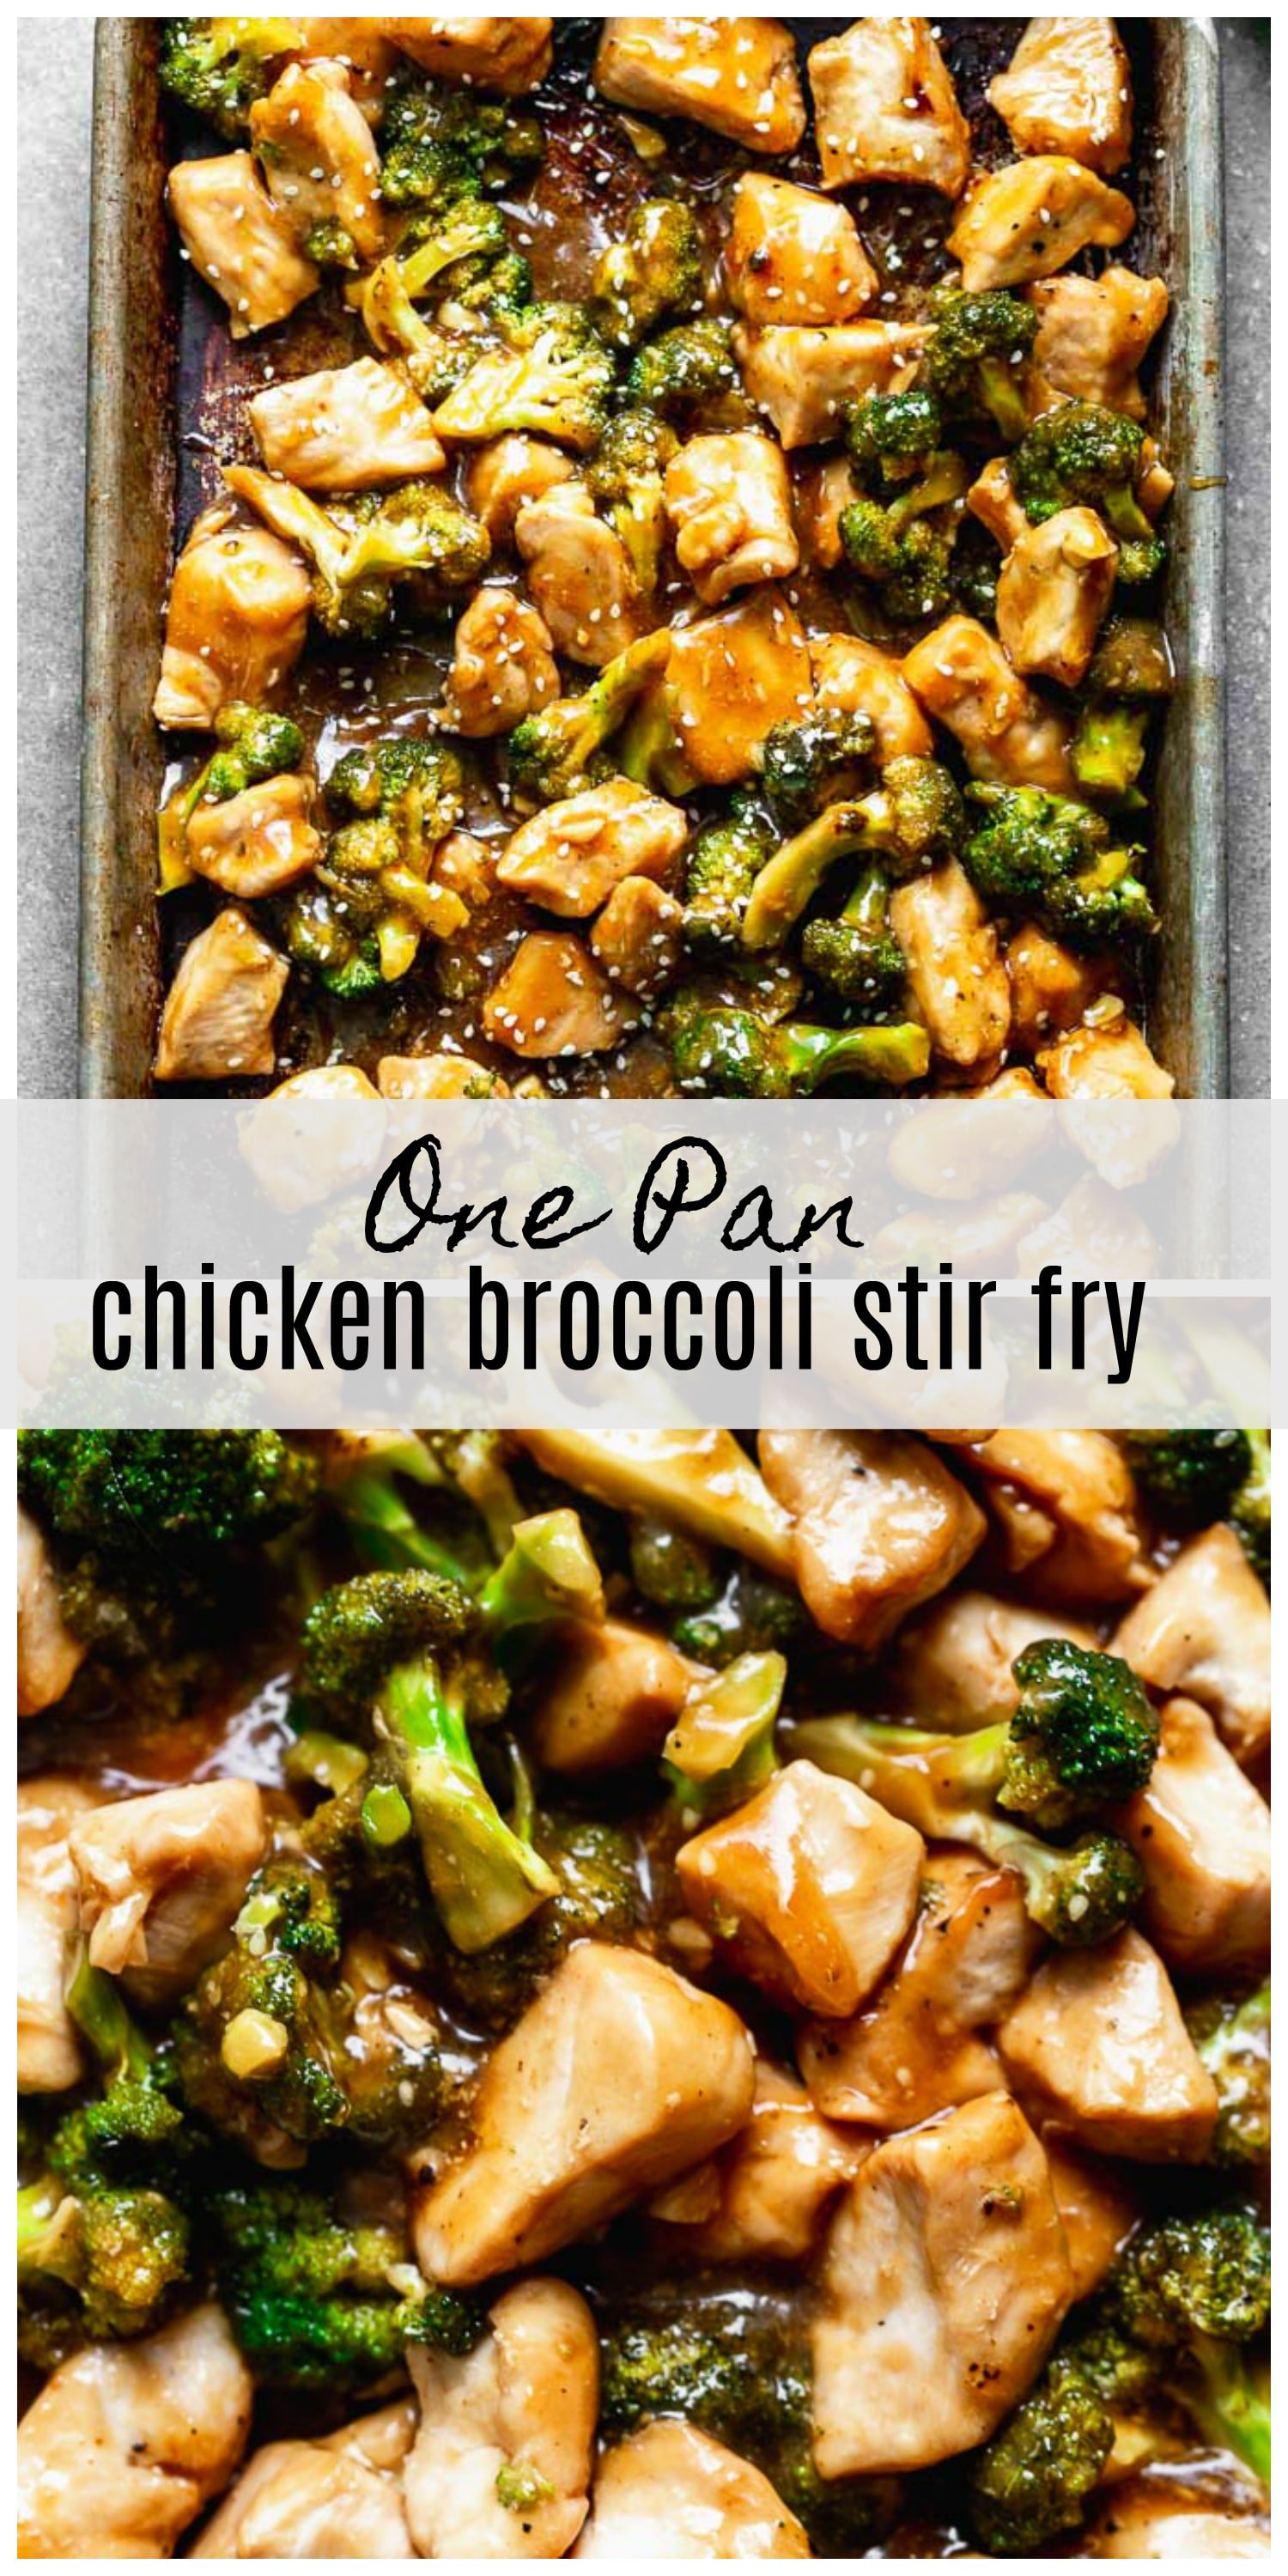 Chinese Chicken Broccoli Stir Fry is a healthier version of a classic, and it's all made in the oven! Tender chicken and crisp broccoli is tossed in a sweet soy glaze and served with simple white rice. Quick, easy, and virtually mess free!